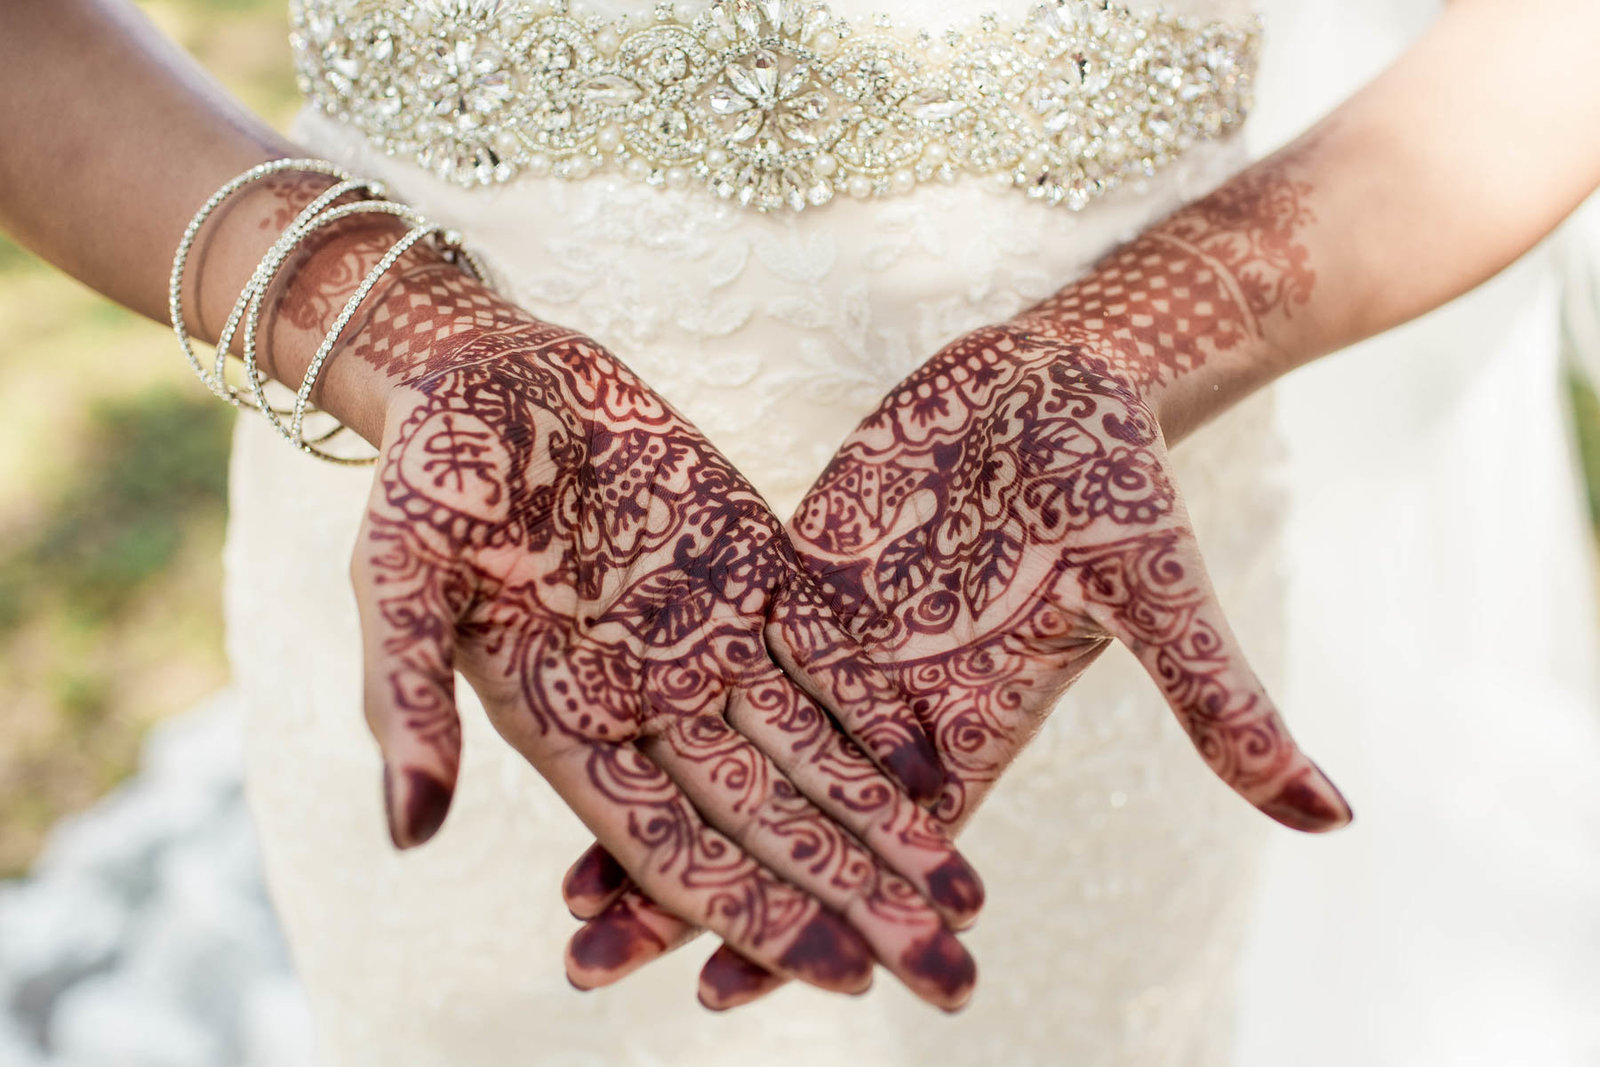 Bride shows her hands designed with henna, White Point Garden, South Carolina